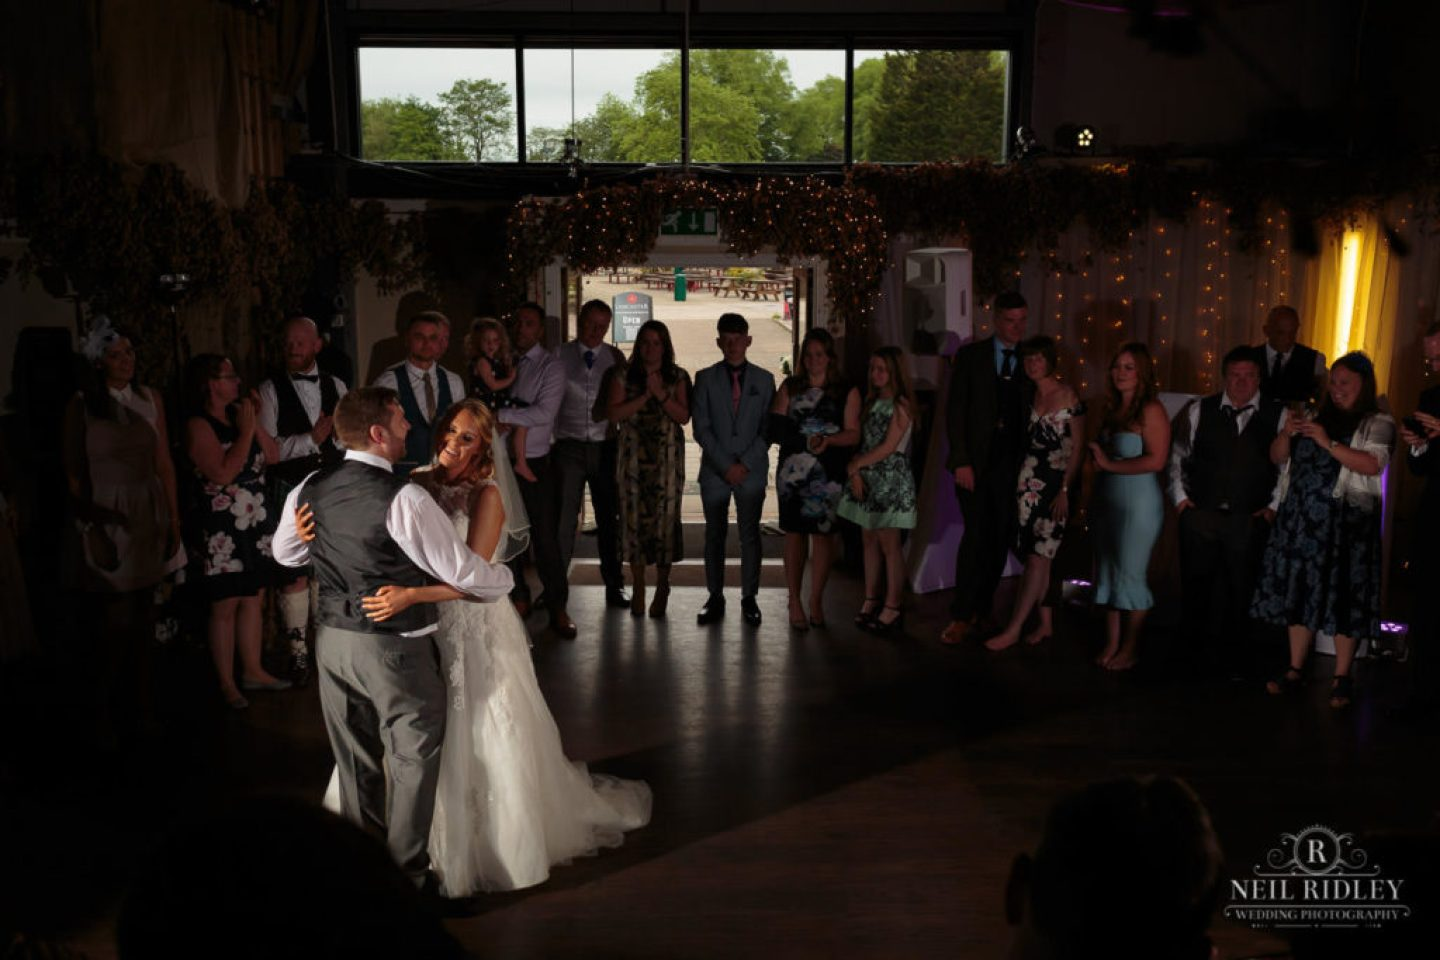 Lancaster Wedding Photographer - Bride and Groom have their First Dance at Lancaster Brewery